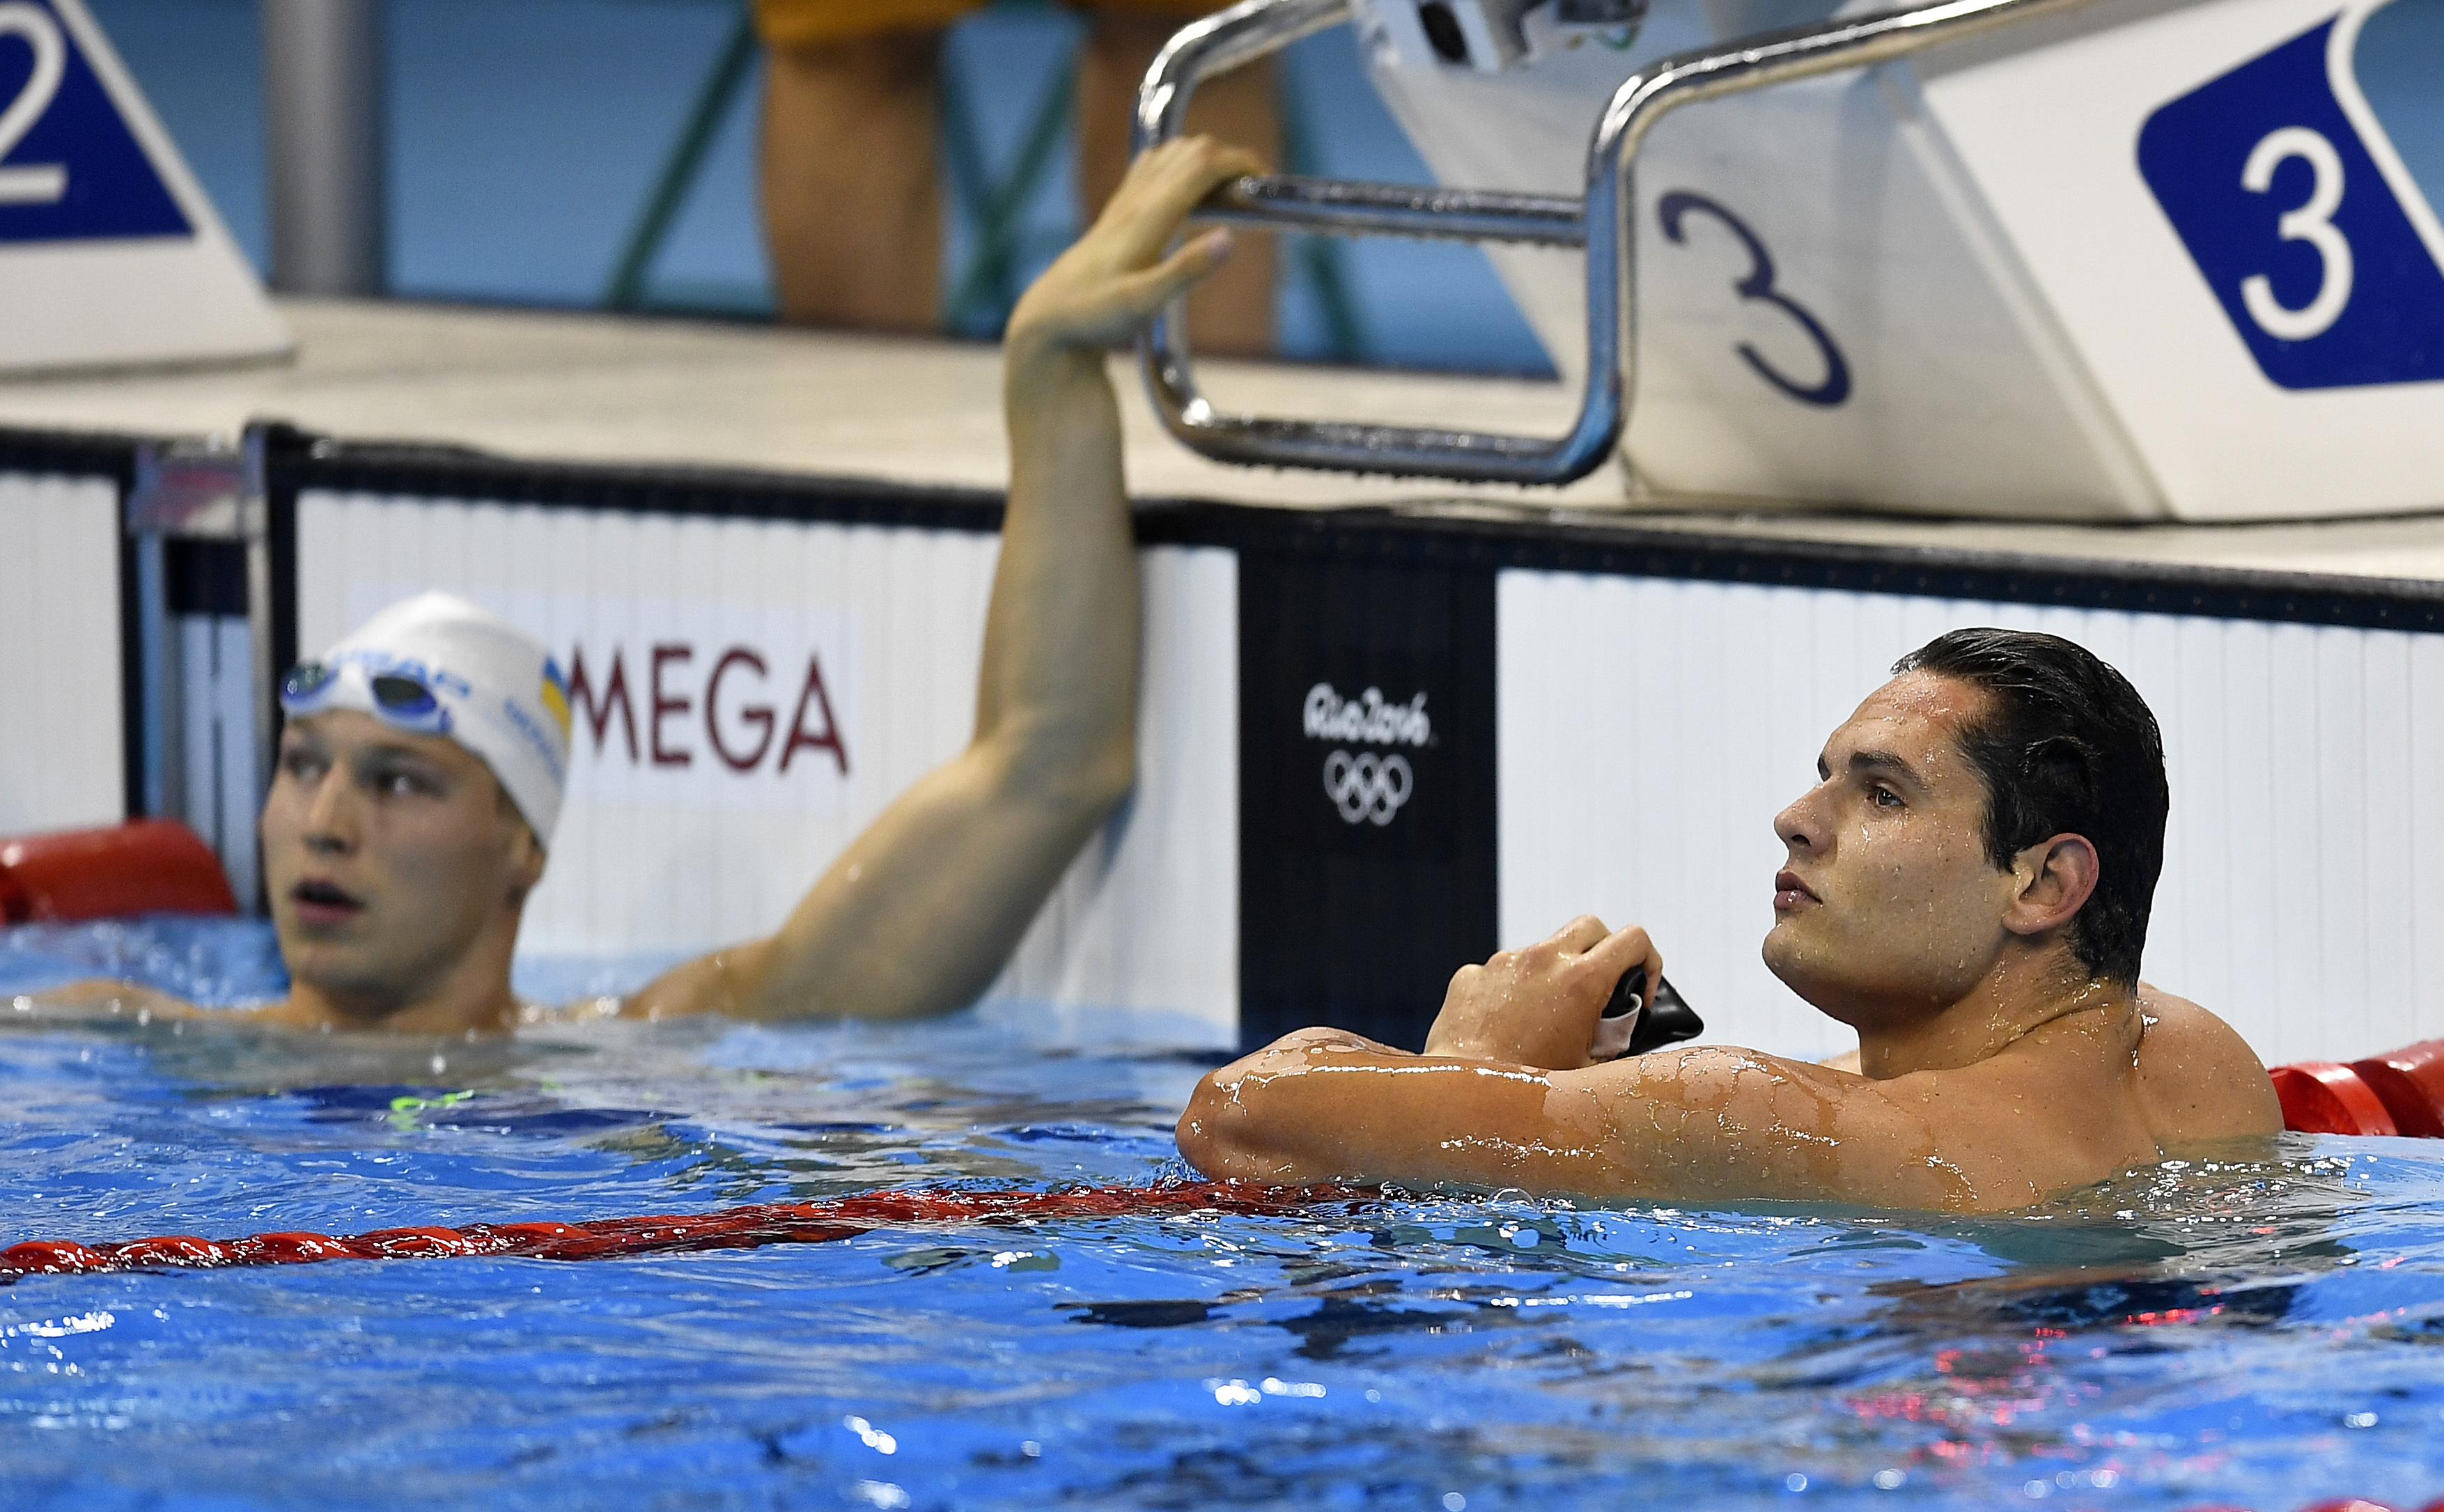 France's Florent Manaudou, right, and Ukraine's Andrii Govorov check their times during a men's 50-meter freestyle heat during the swimming competitions at the 2016 Summer Olympics, Thursday, Aug. 11, 2016, in Rio de Janeiro, Brazil. (AP Photo/Martin Meis